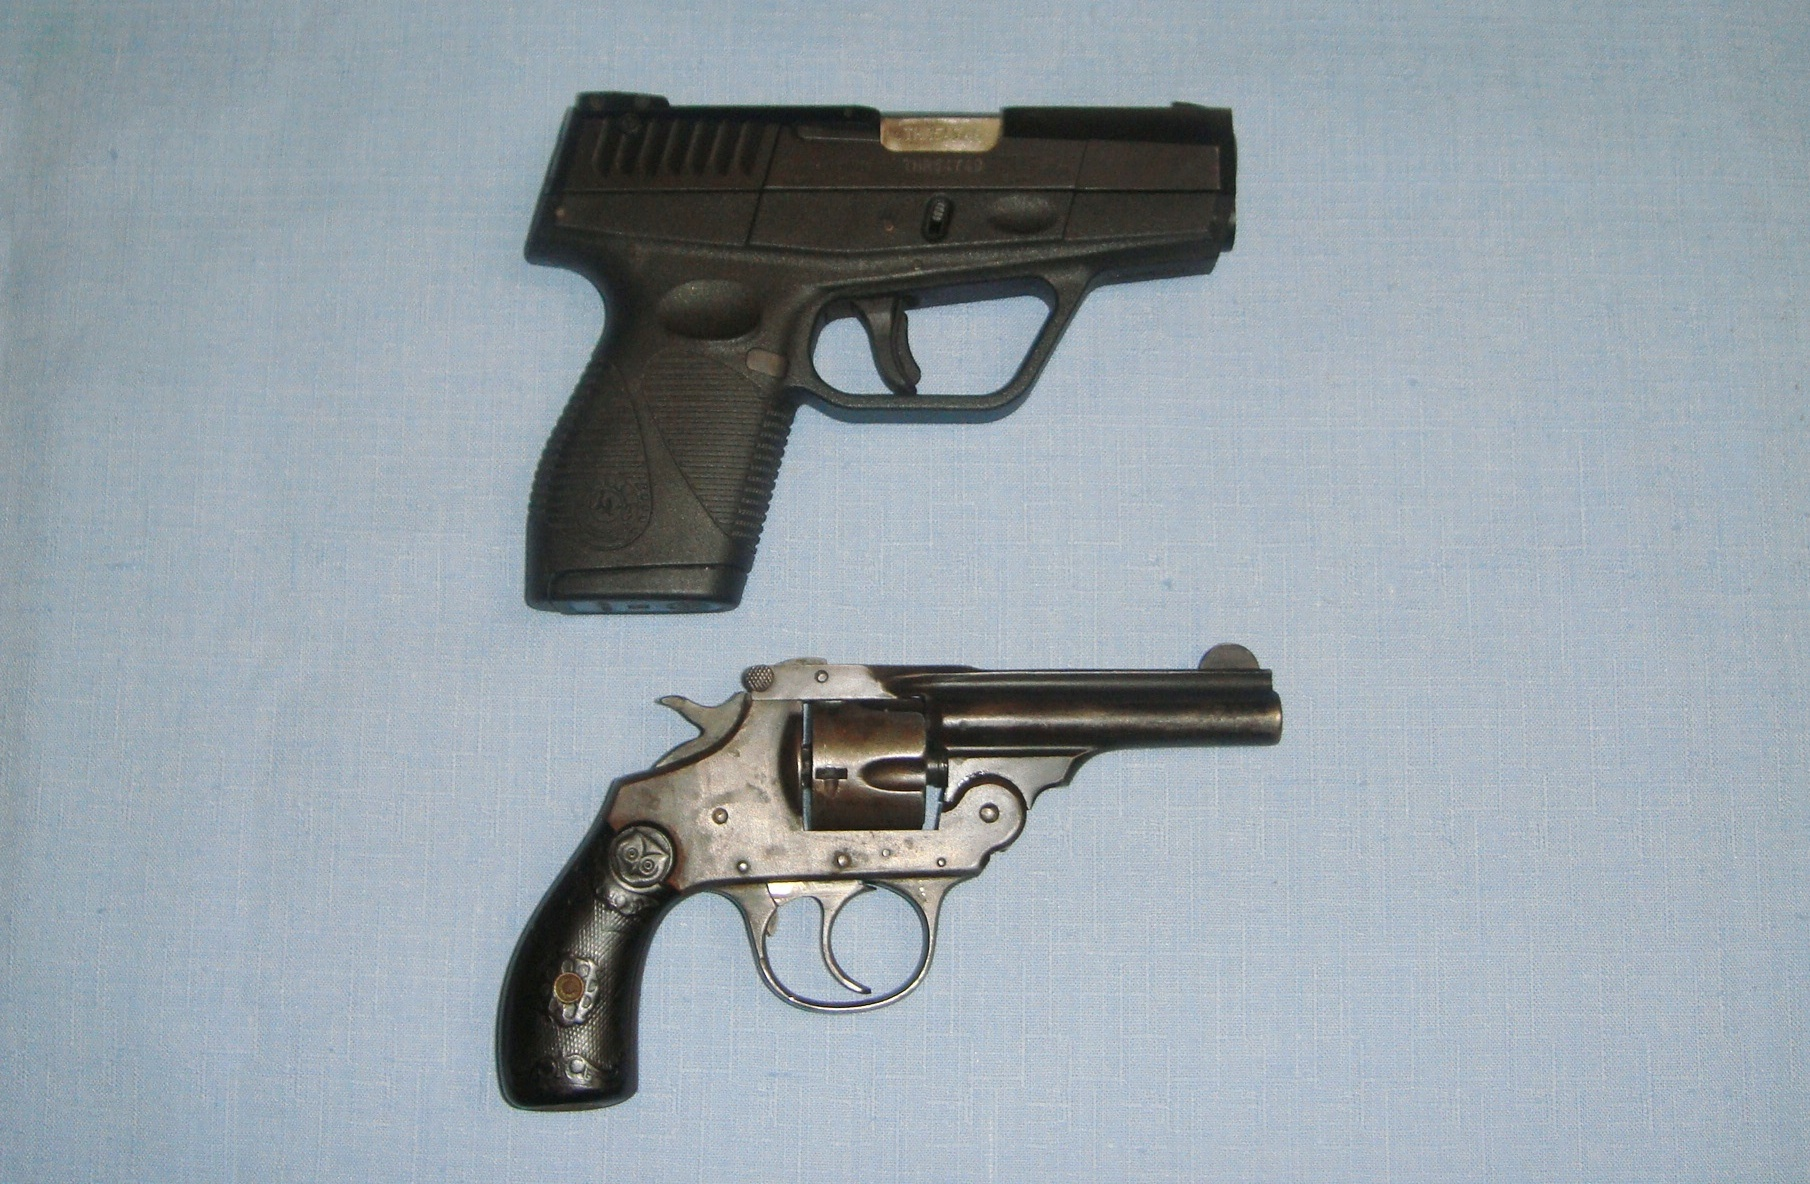 709 slim 9mm pistol - So The Problem Was That We Didn T Go Fishing Anymore That Spring Or Summer And I Never Fired The Gun When I Finally Got Around To Taking The Taurus Down